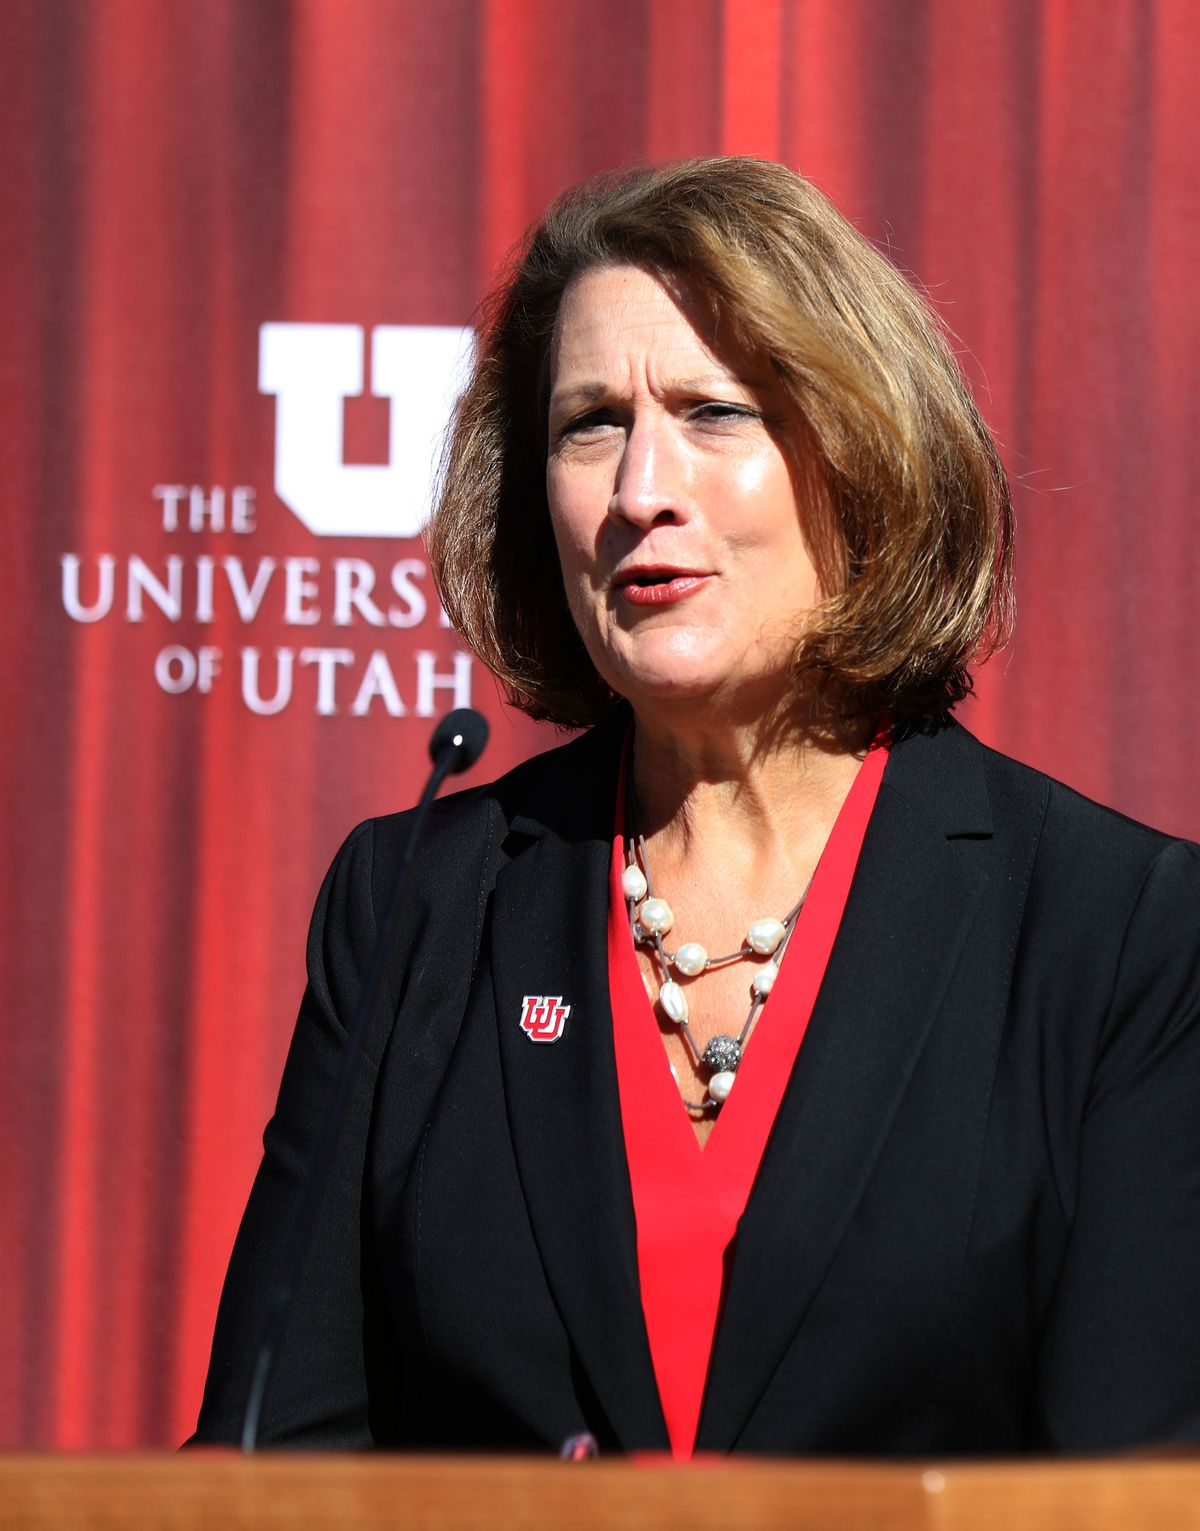 University of Utah President Ruth Watkins announces the U. has been selected to host the vice presidential debate during a press conference at Kingsbury Hall in Salt Lake City on Friday, Oct. 11, 2019. The debate will be held at the hall on Oct. 7, 2020.